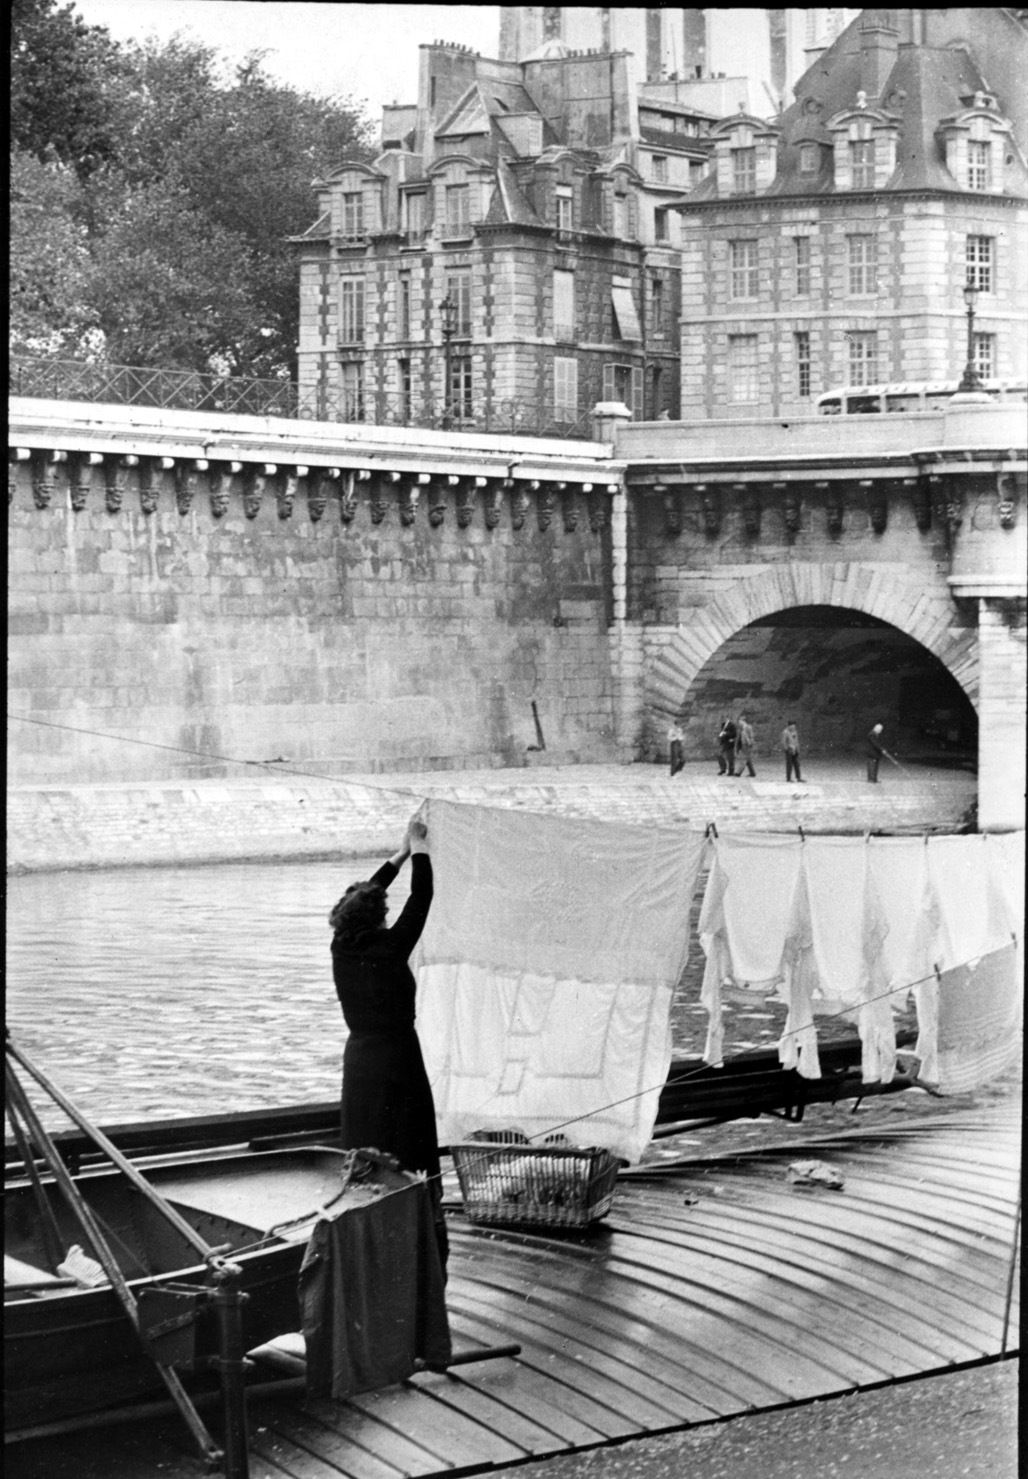 PONT NEUF by Henri Cartier-Bresson